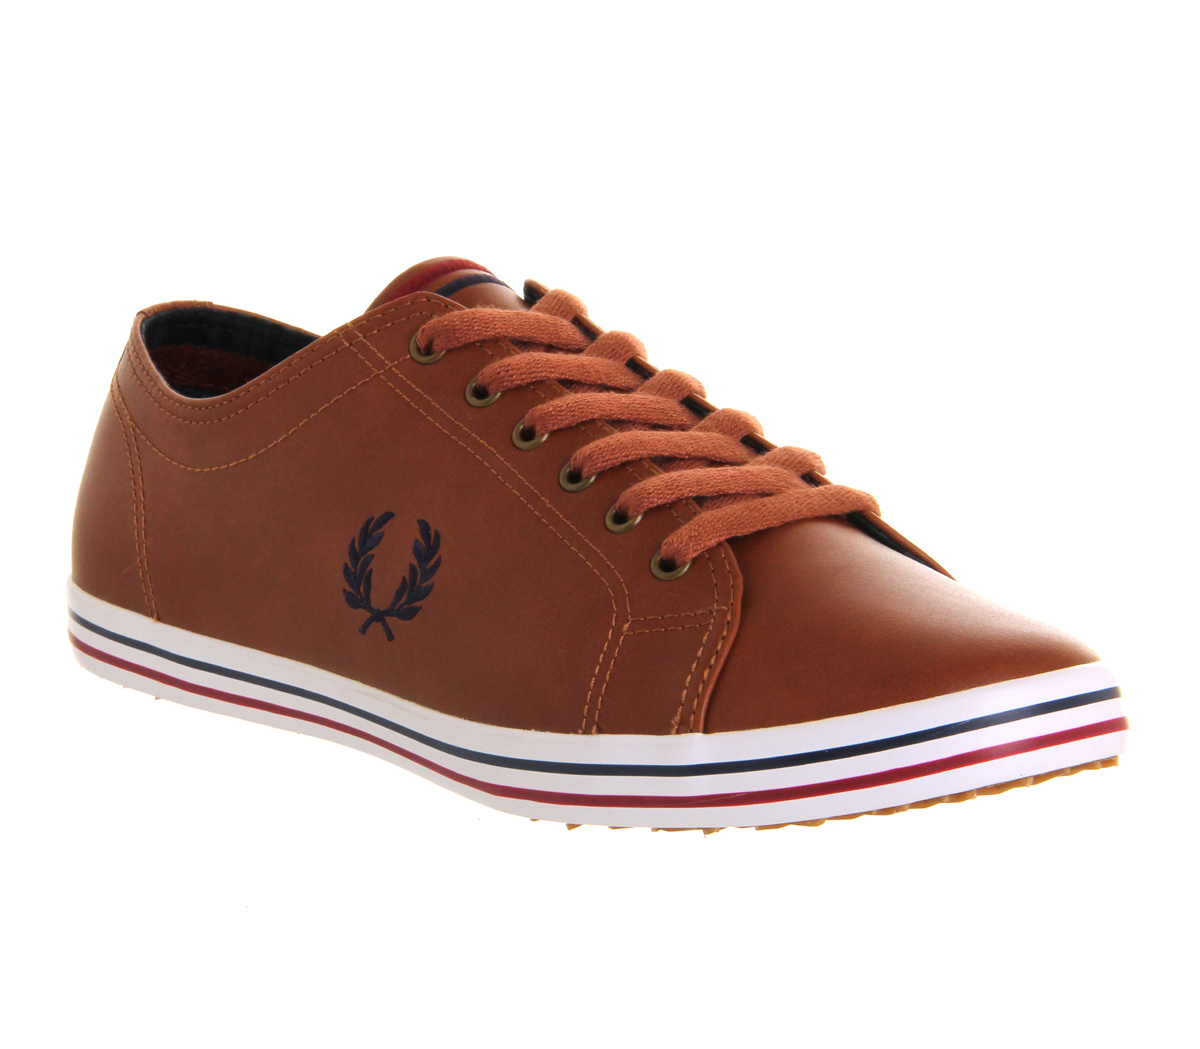 fred perry leather sneakers in brown for men lyst. Black Bedroom Furniture Sets. Home Design Ideas